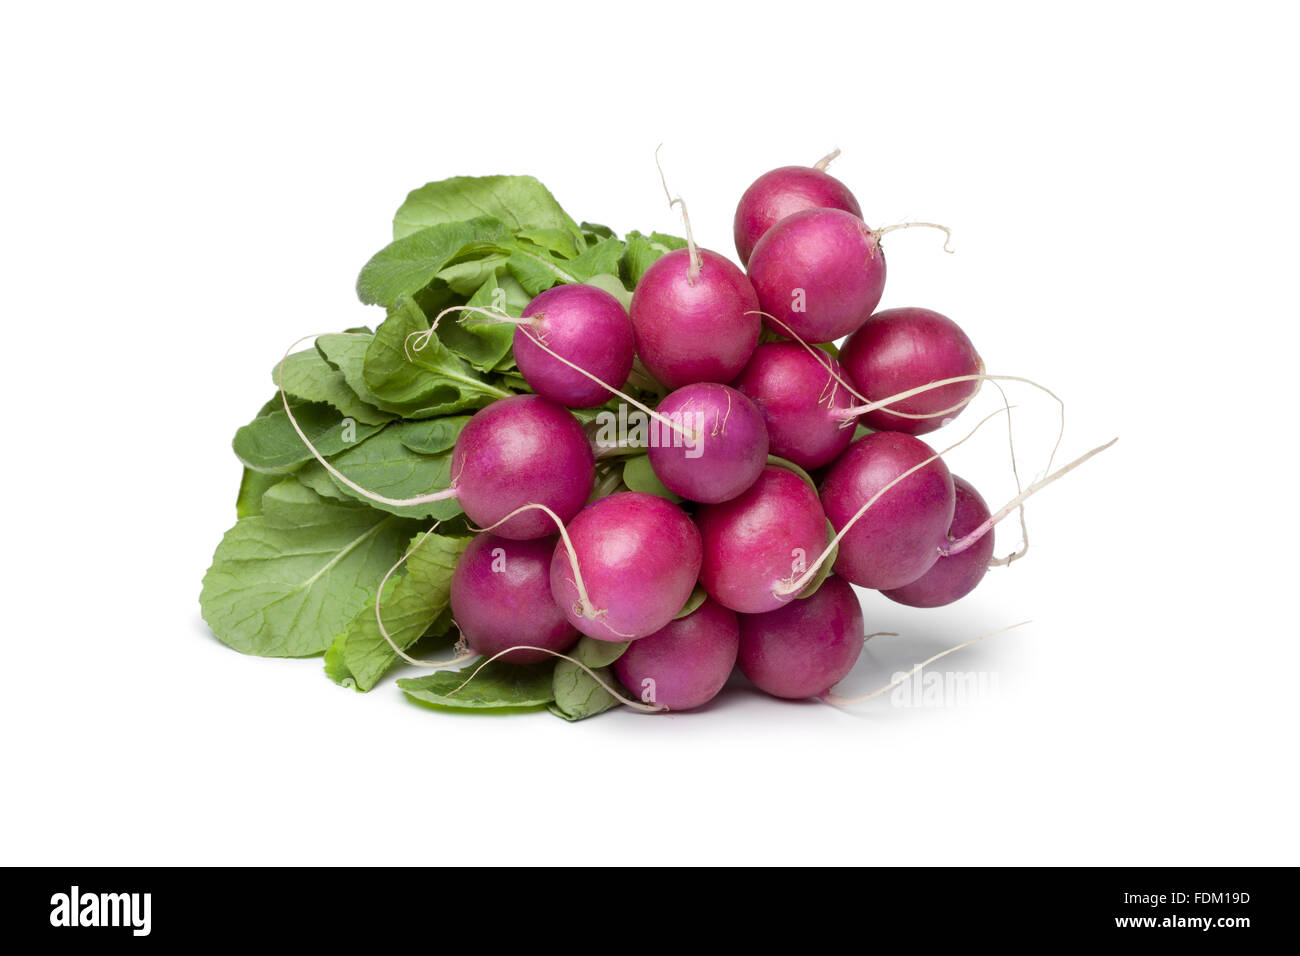 Bunch of fresh purple Radish on white background - Stock Image